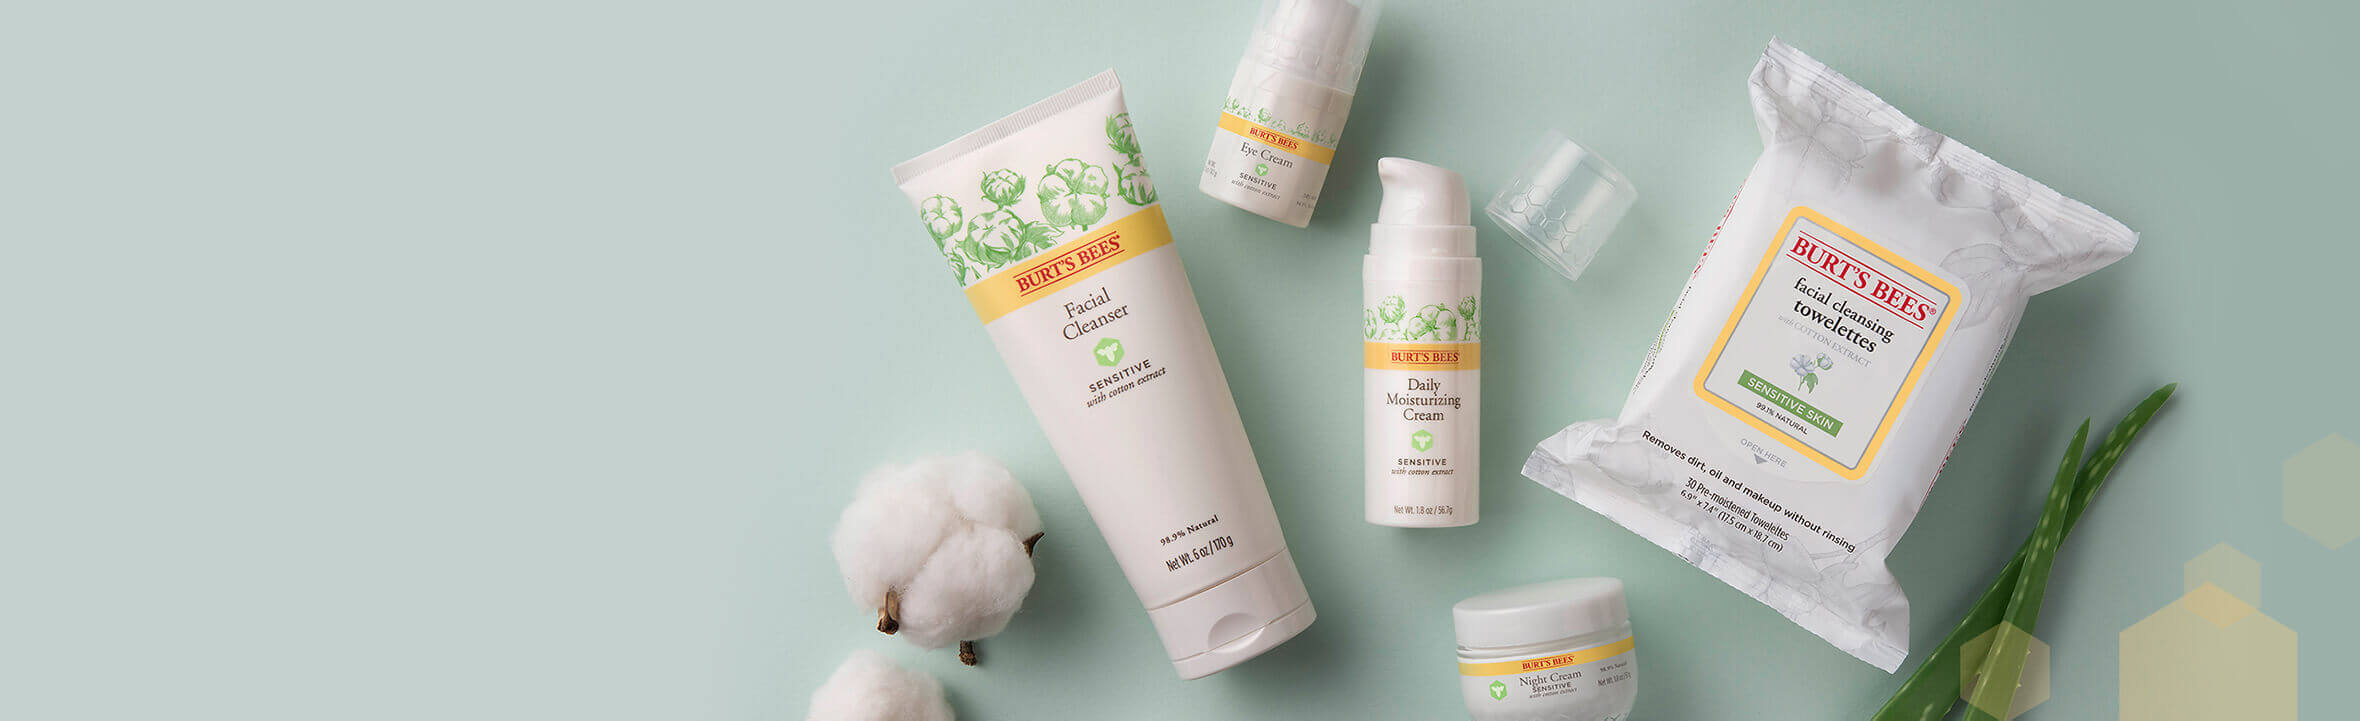 sensitive skincare products